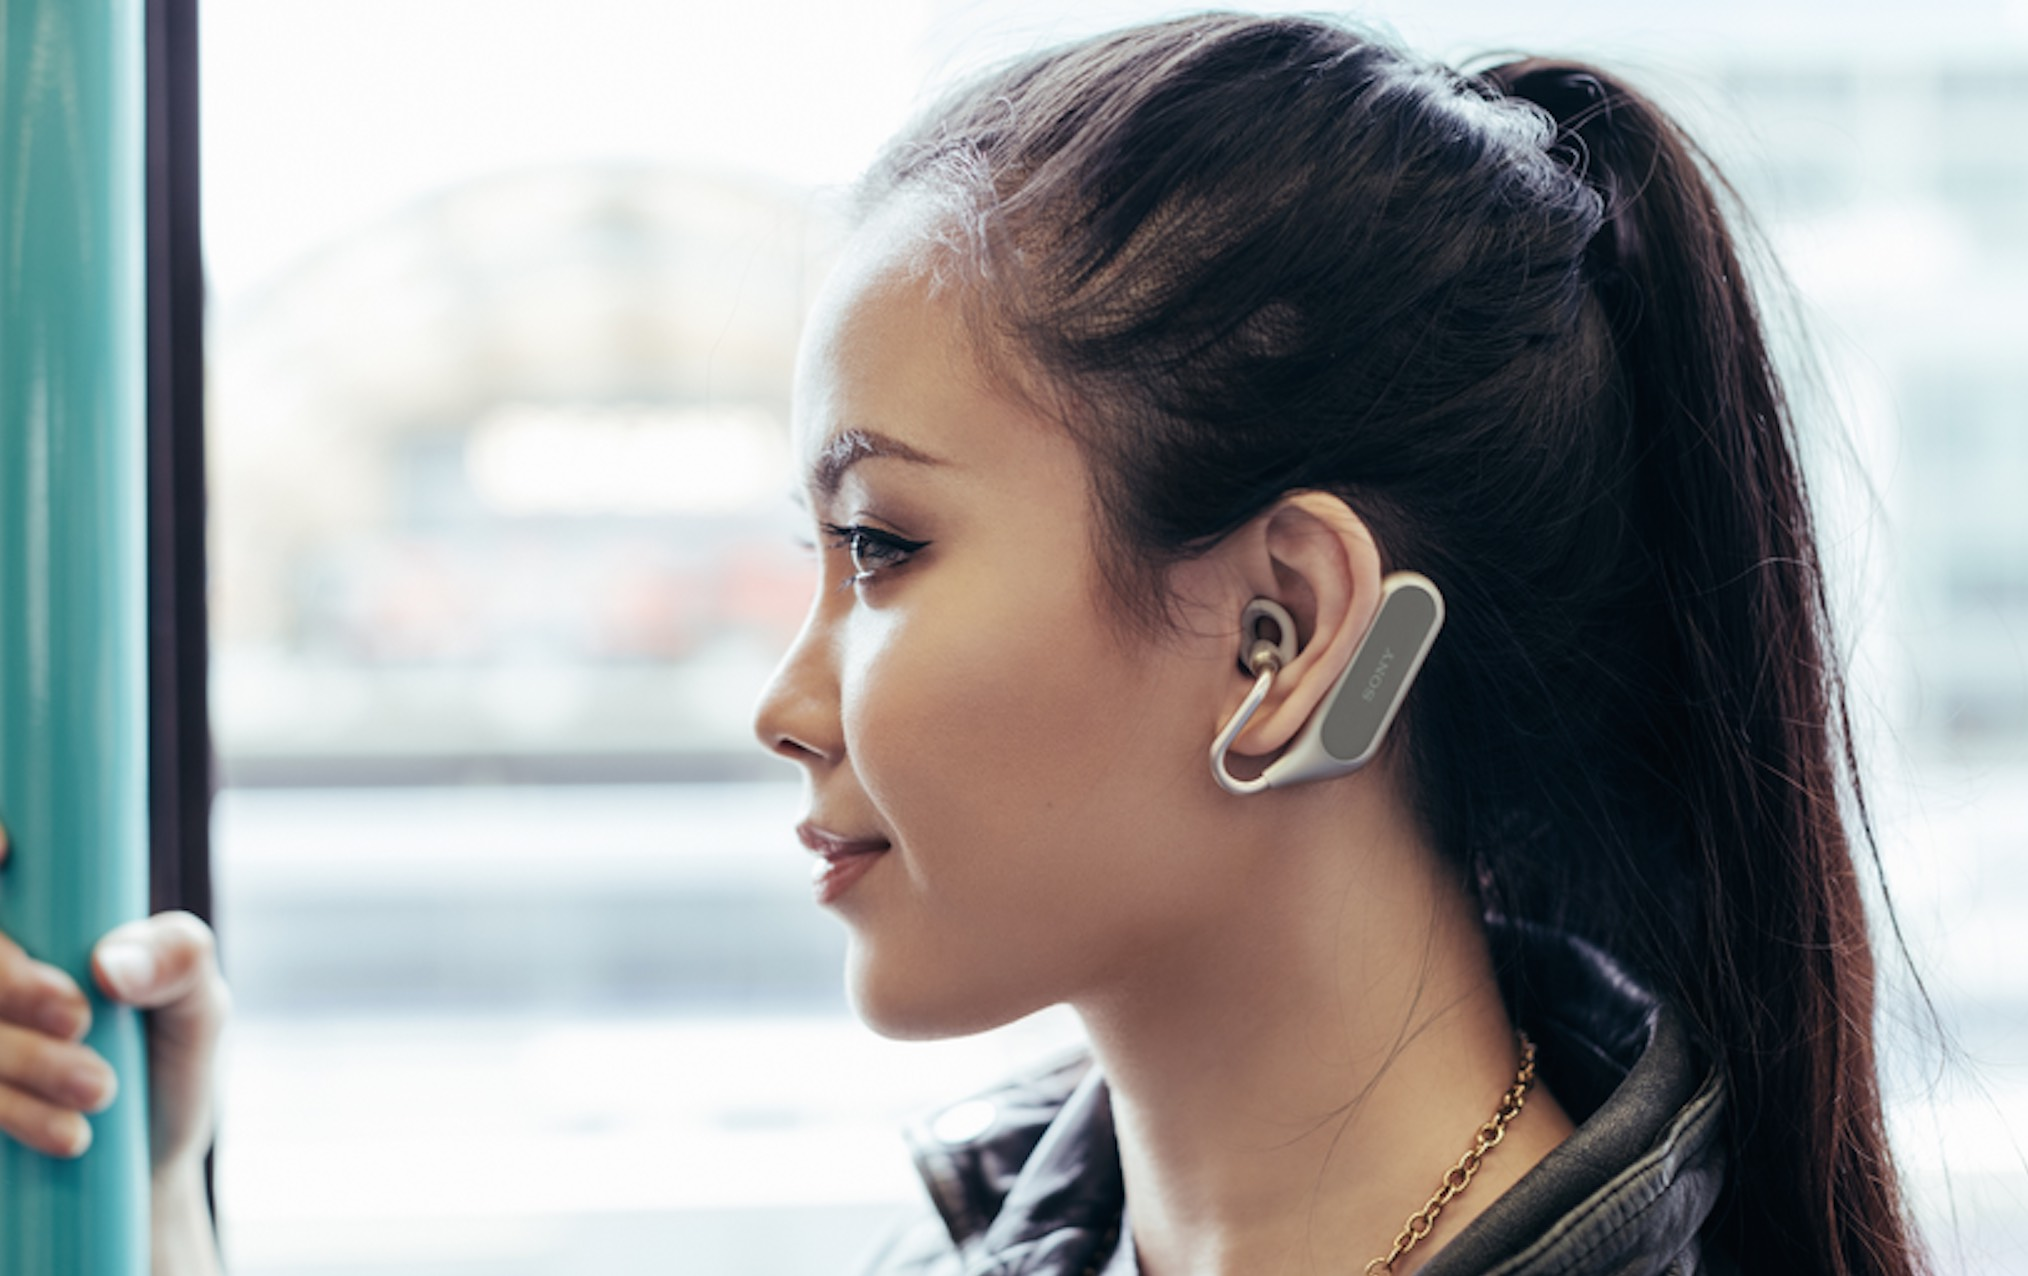 Sony Xperia Ear Duo: